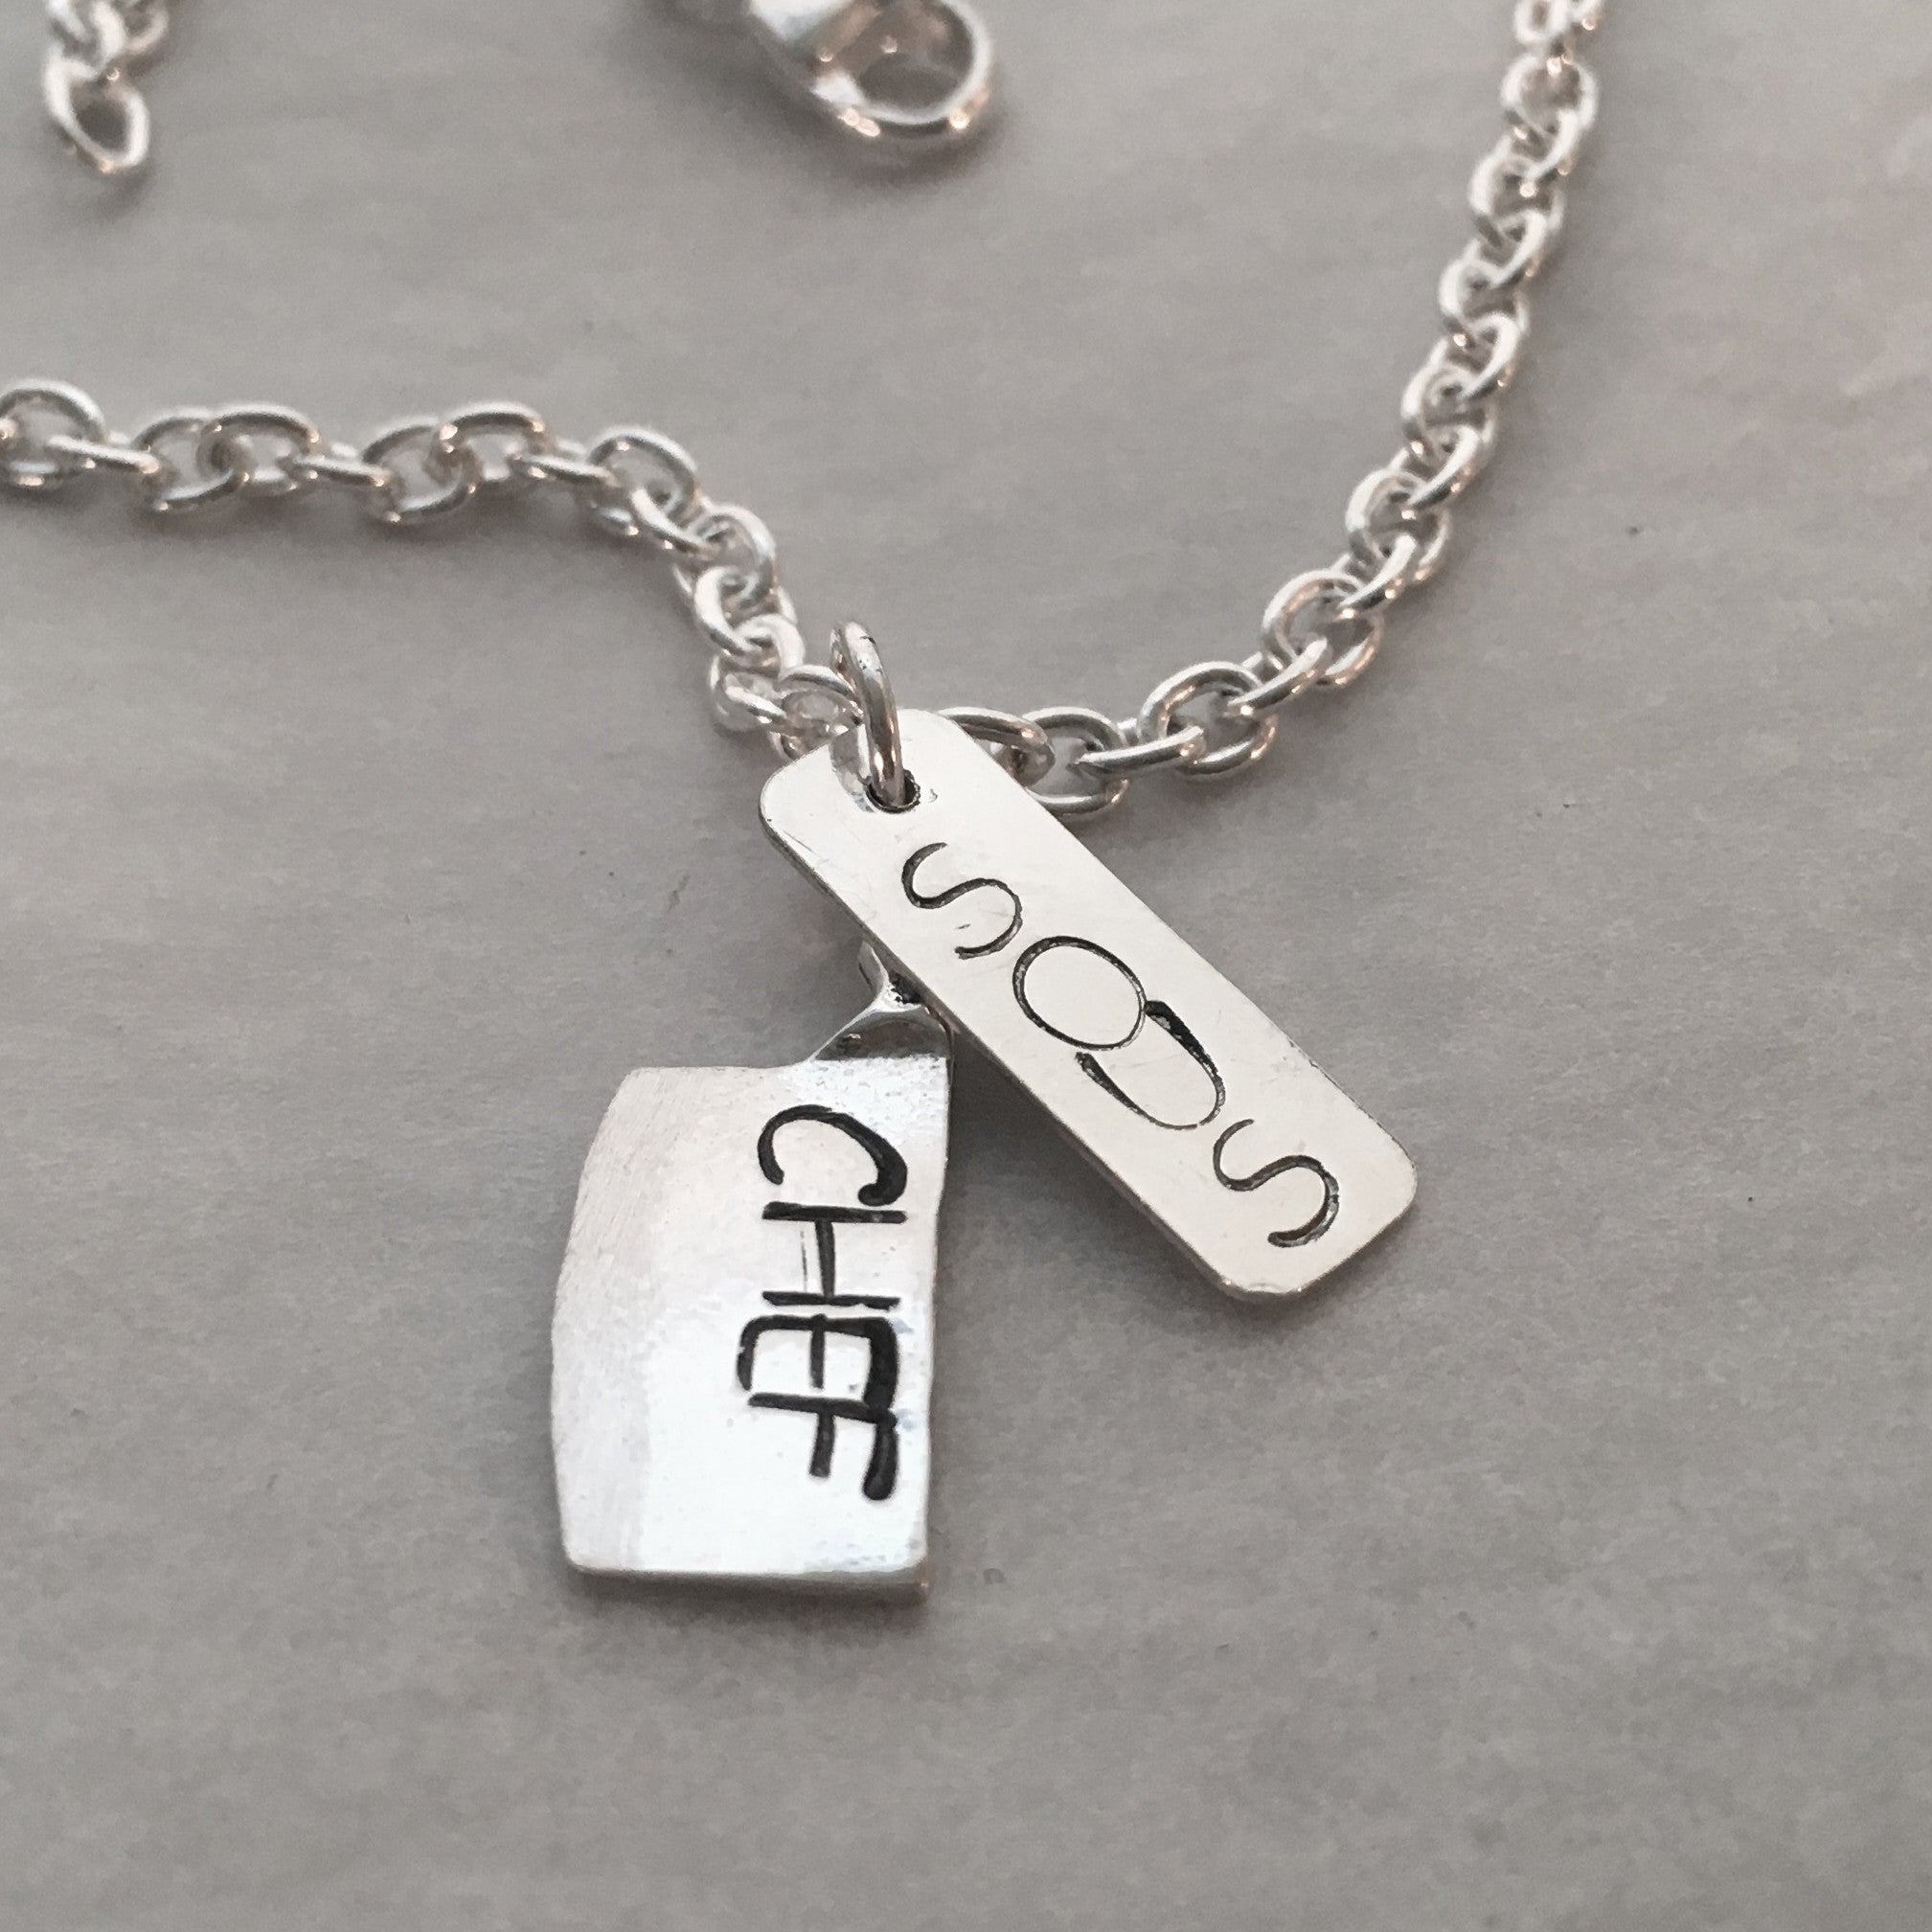 Man's Hand Stamped Sous Chef Knife and Dog Tag Pendant Necklace